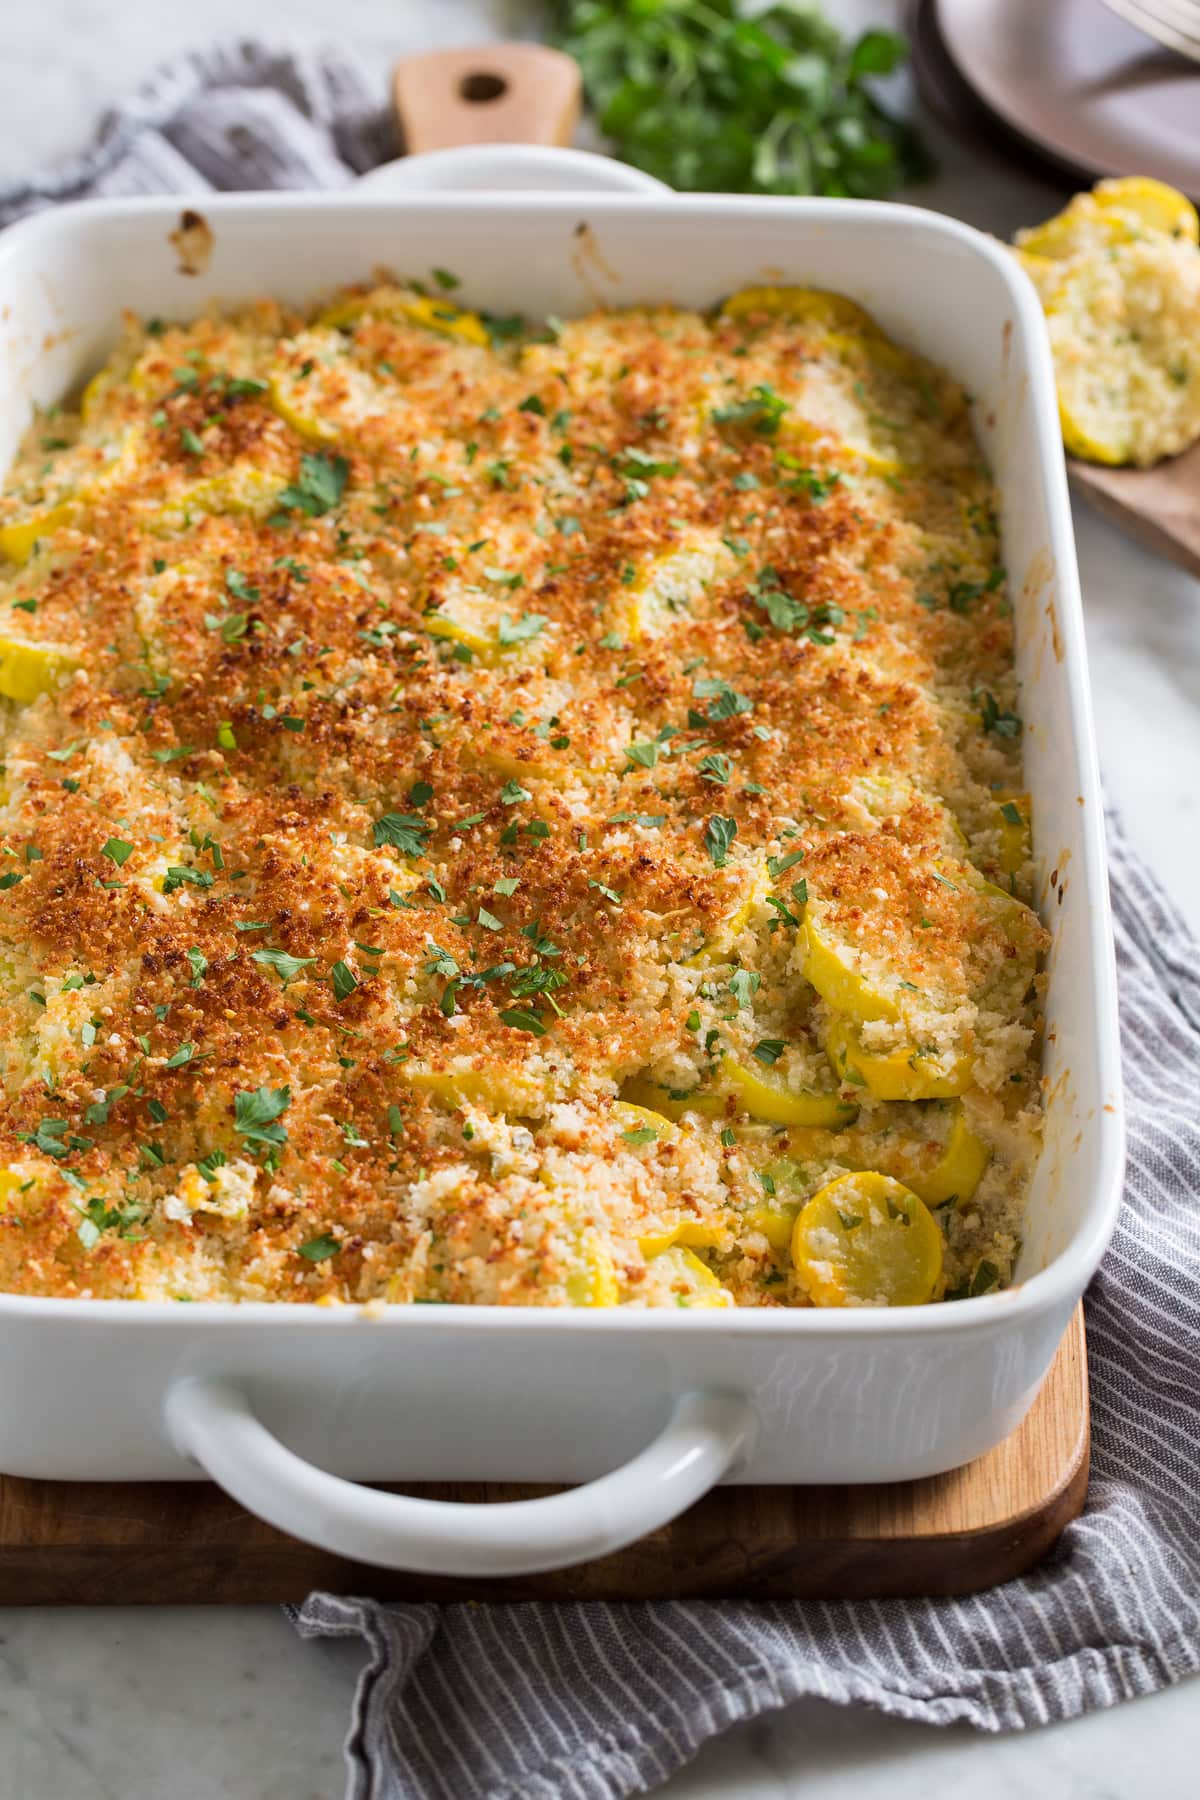 Baked yellow Squash Casserole in a white ceramic baking dish.